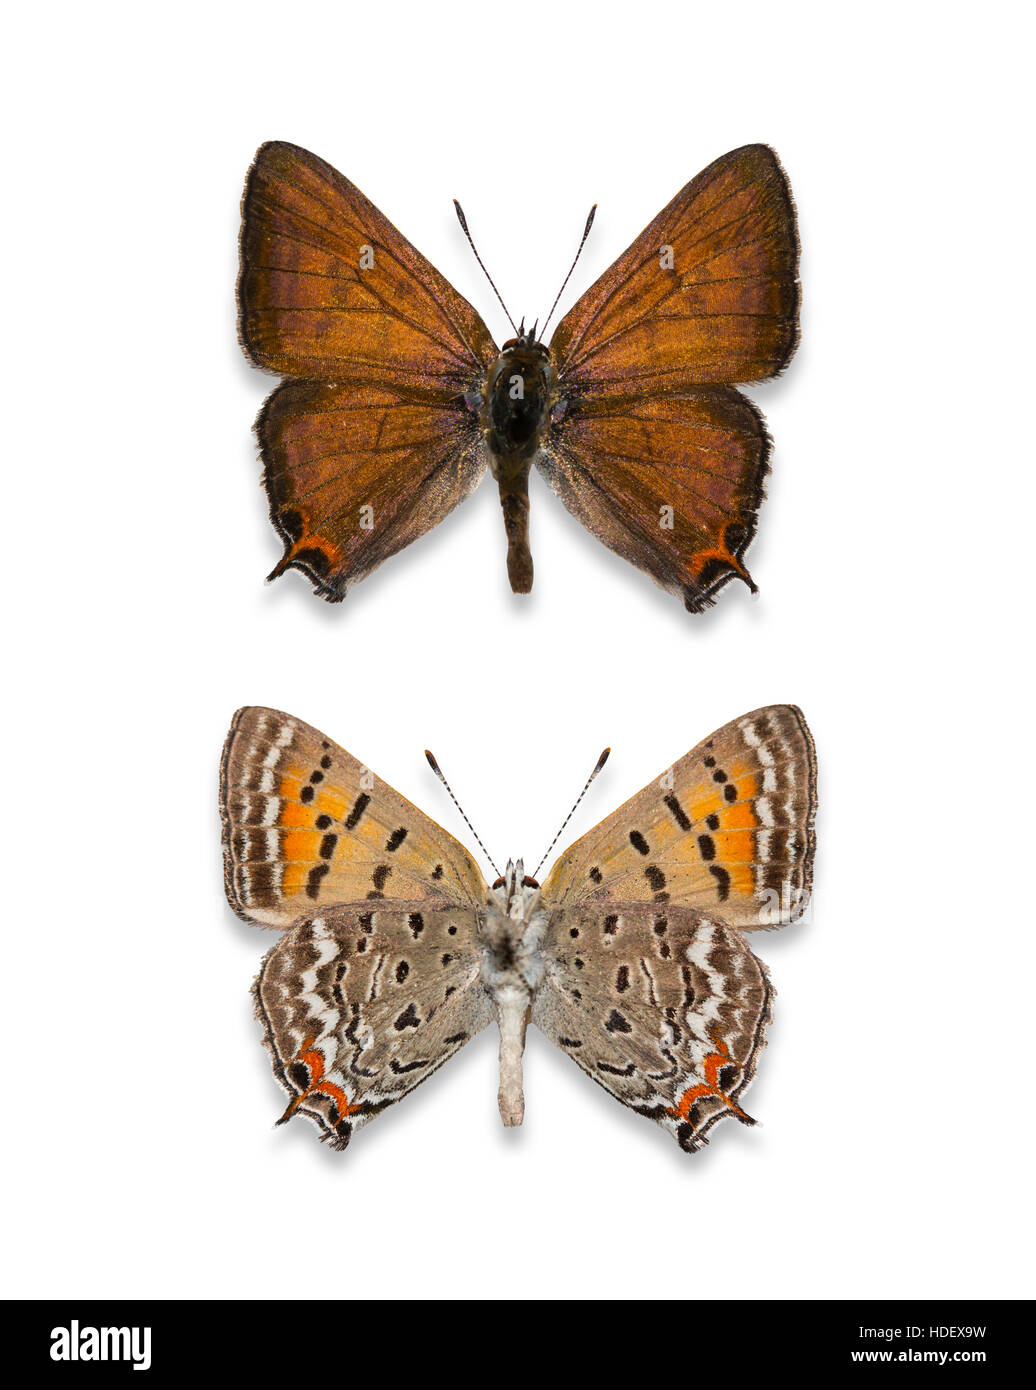 A pair of pinned and spread cutout male Tailed Copper butterflies (Lycaena arota), dorsal and ventral views - Stock Image